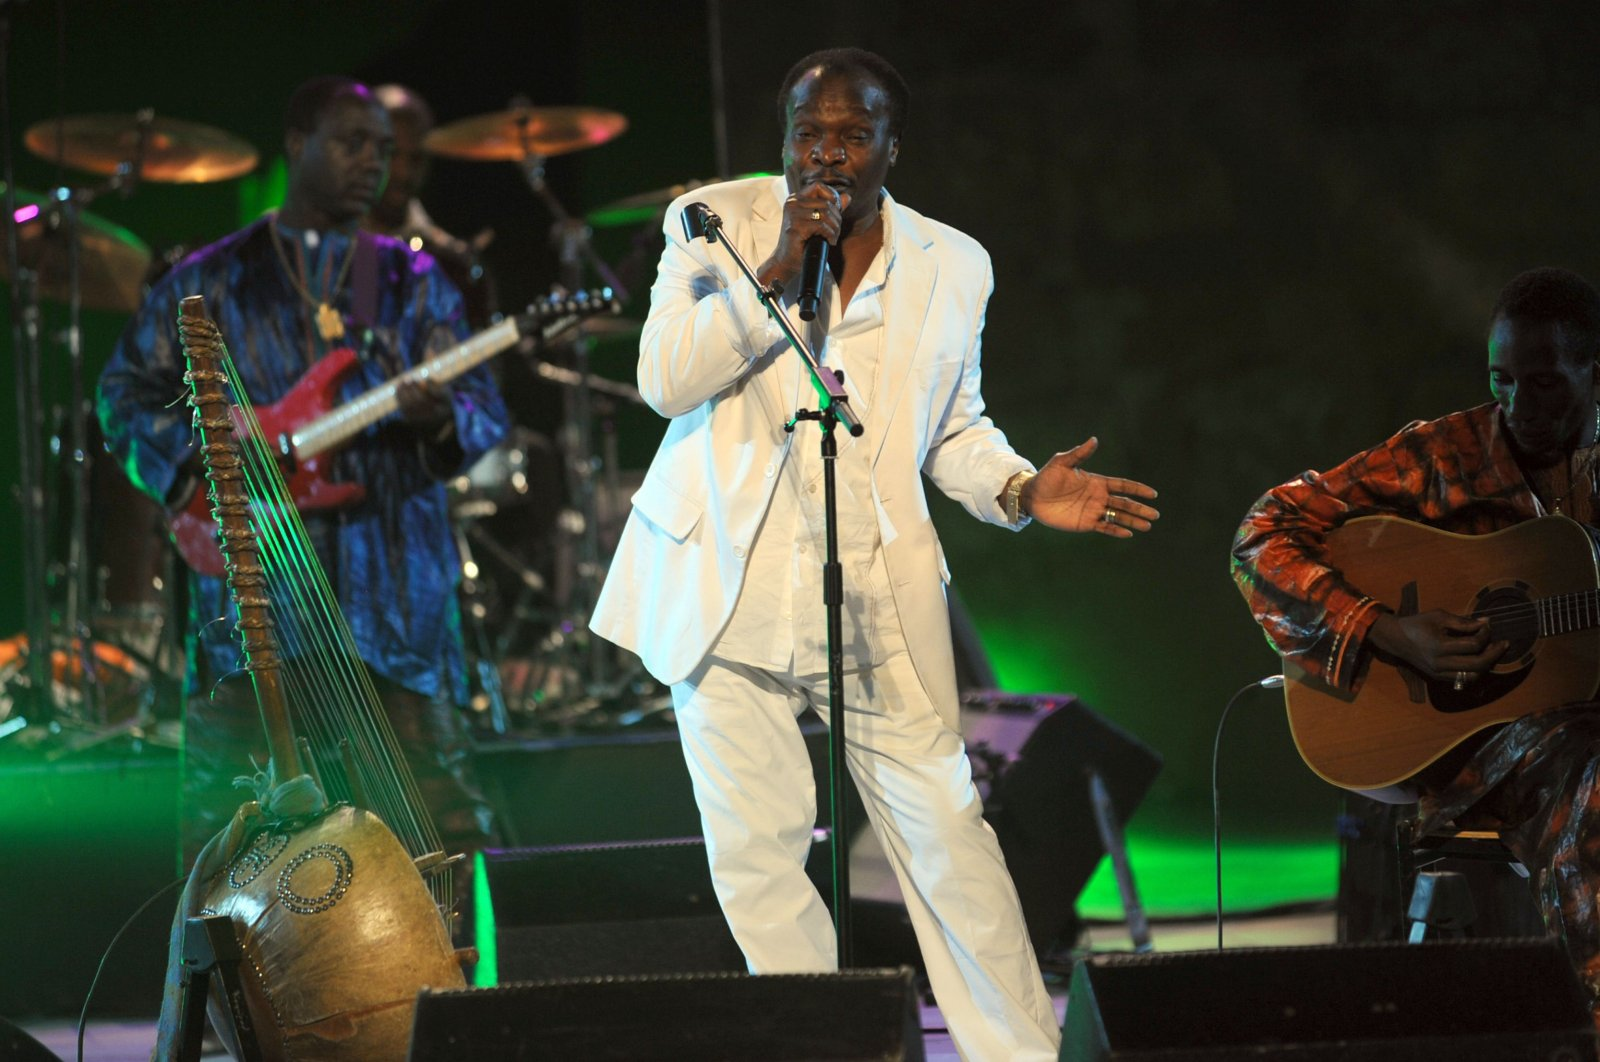 Guinea's singer Mory Kante performs at a Roman theater during the 46th International Festival of Carthage, Carthage, July 14, 2010. (AFP Photo)